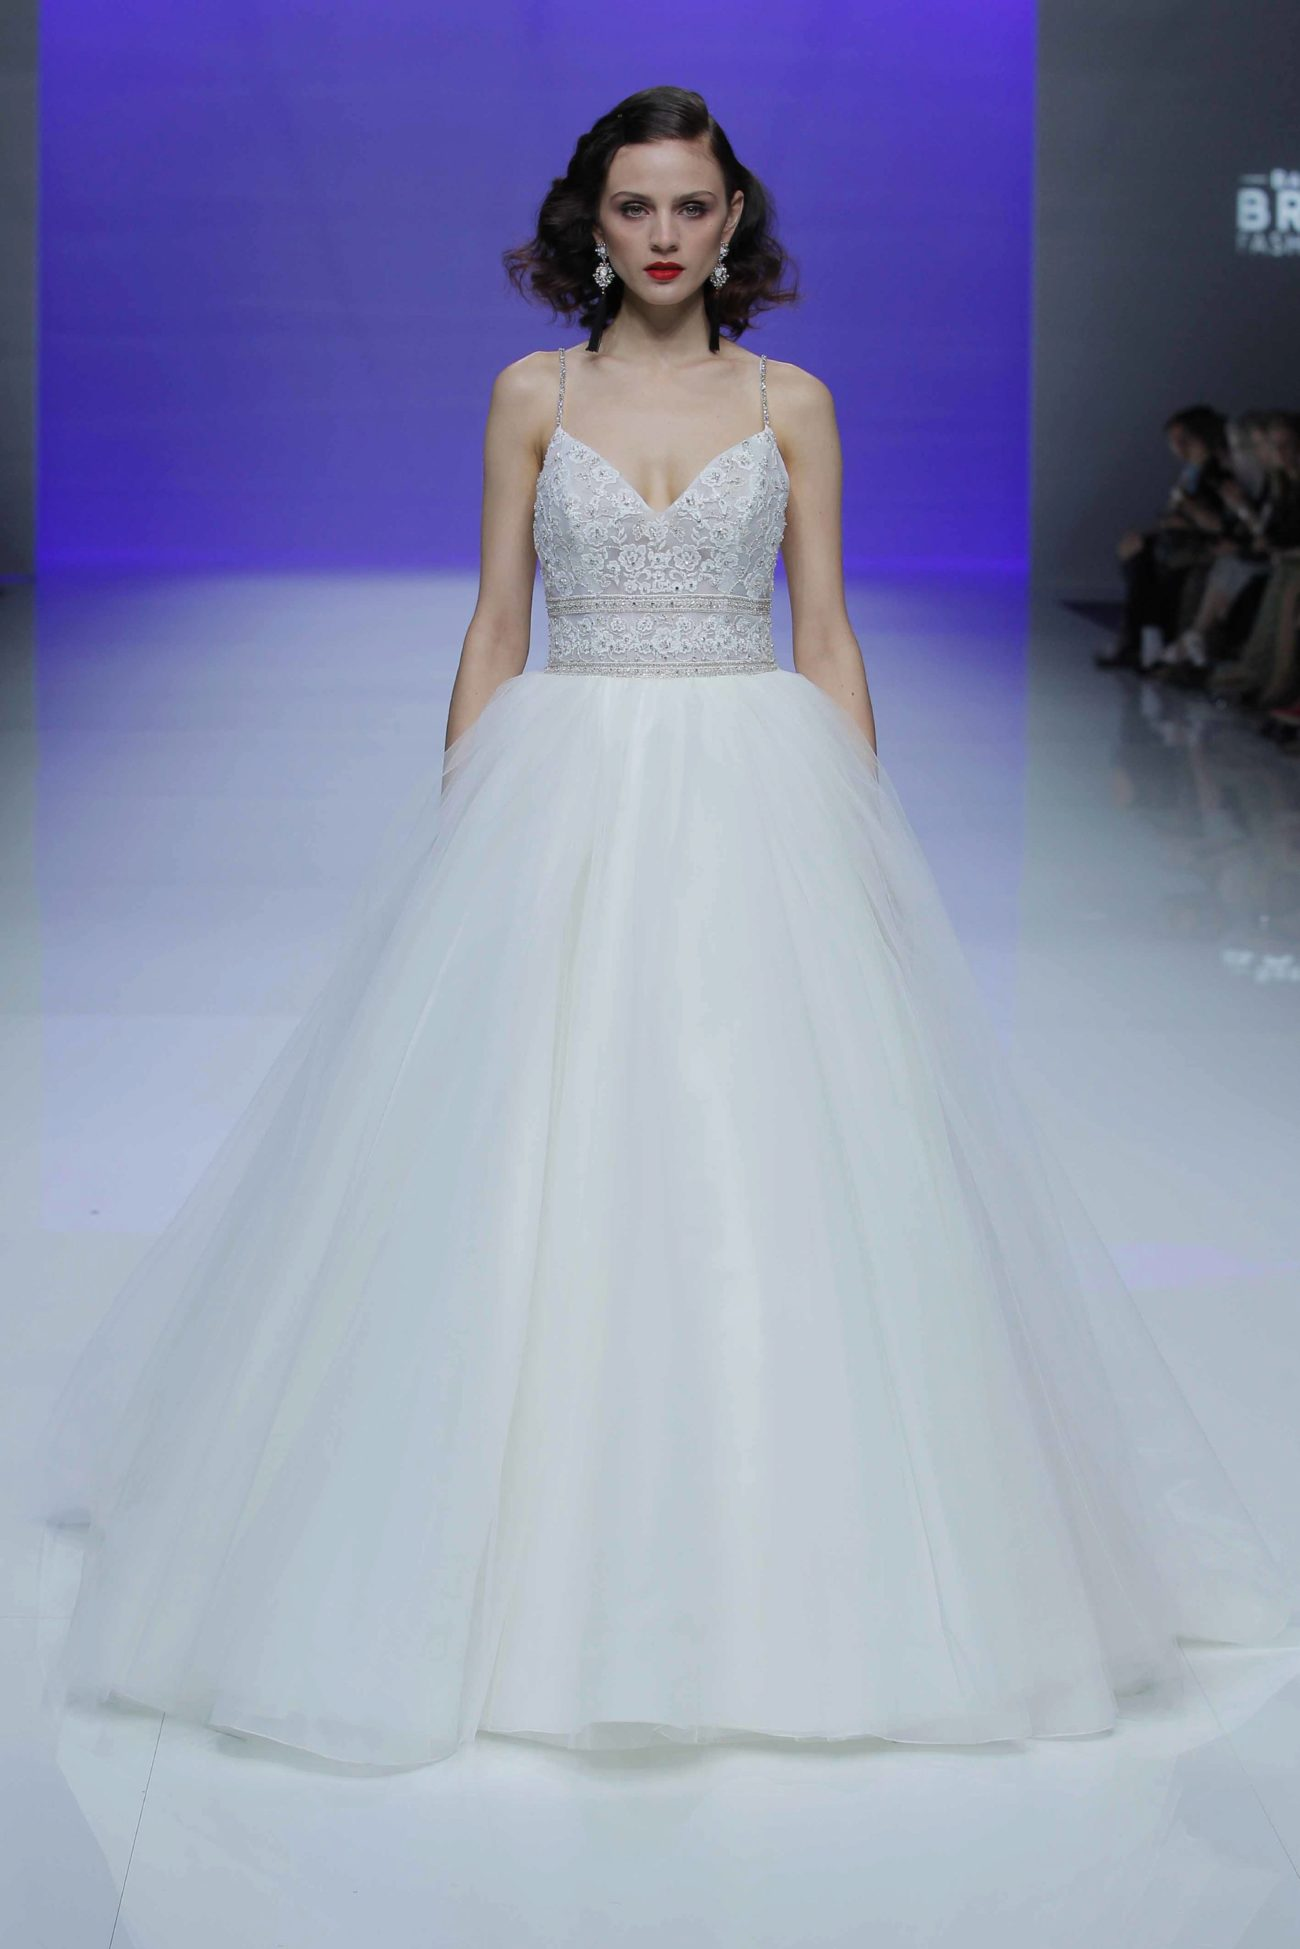 Contemporary Vestidos Novia Años 50 Picture Collection - All Wedding ...